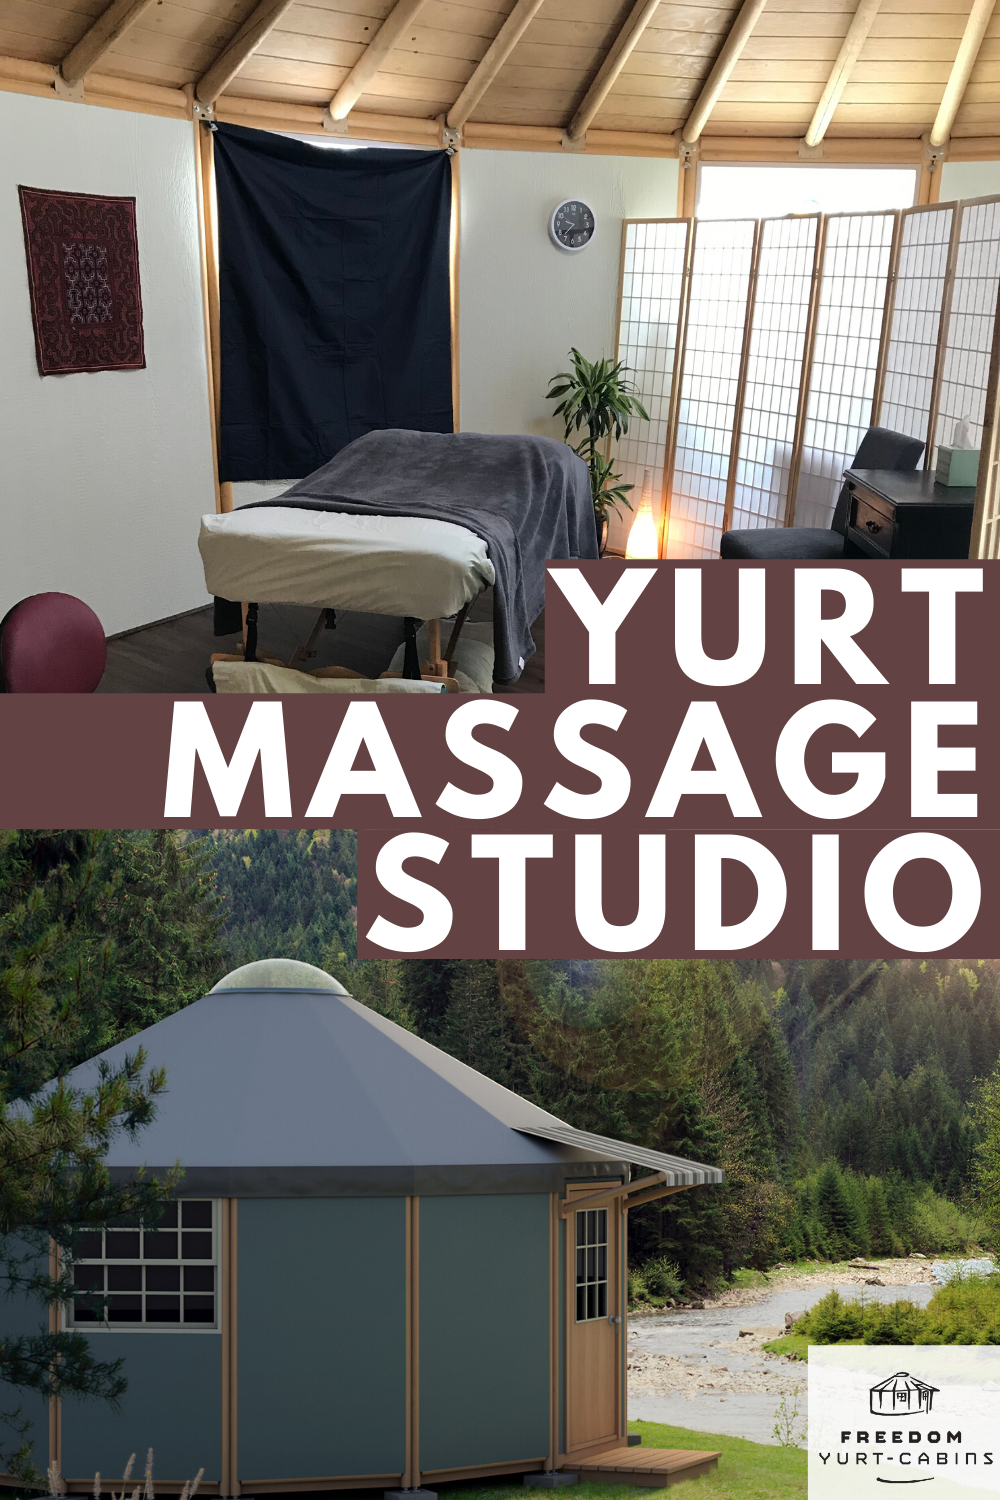 Yurt Cabins For Business Freedom Yurt Cabins Massage Room Massage Therapy Rooms Massage Studio